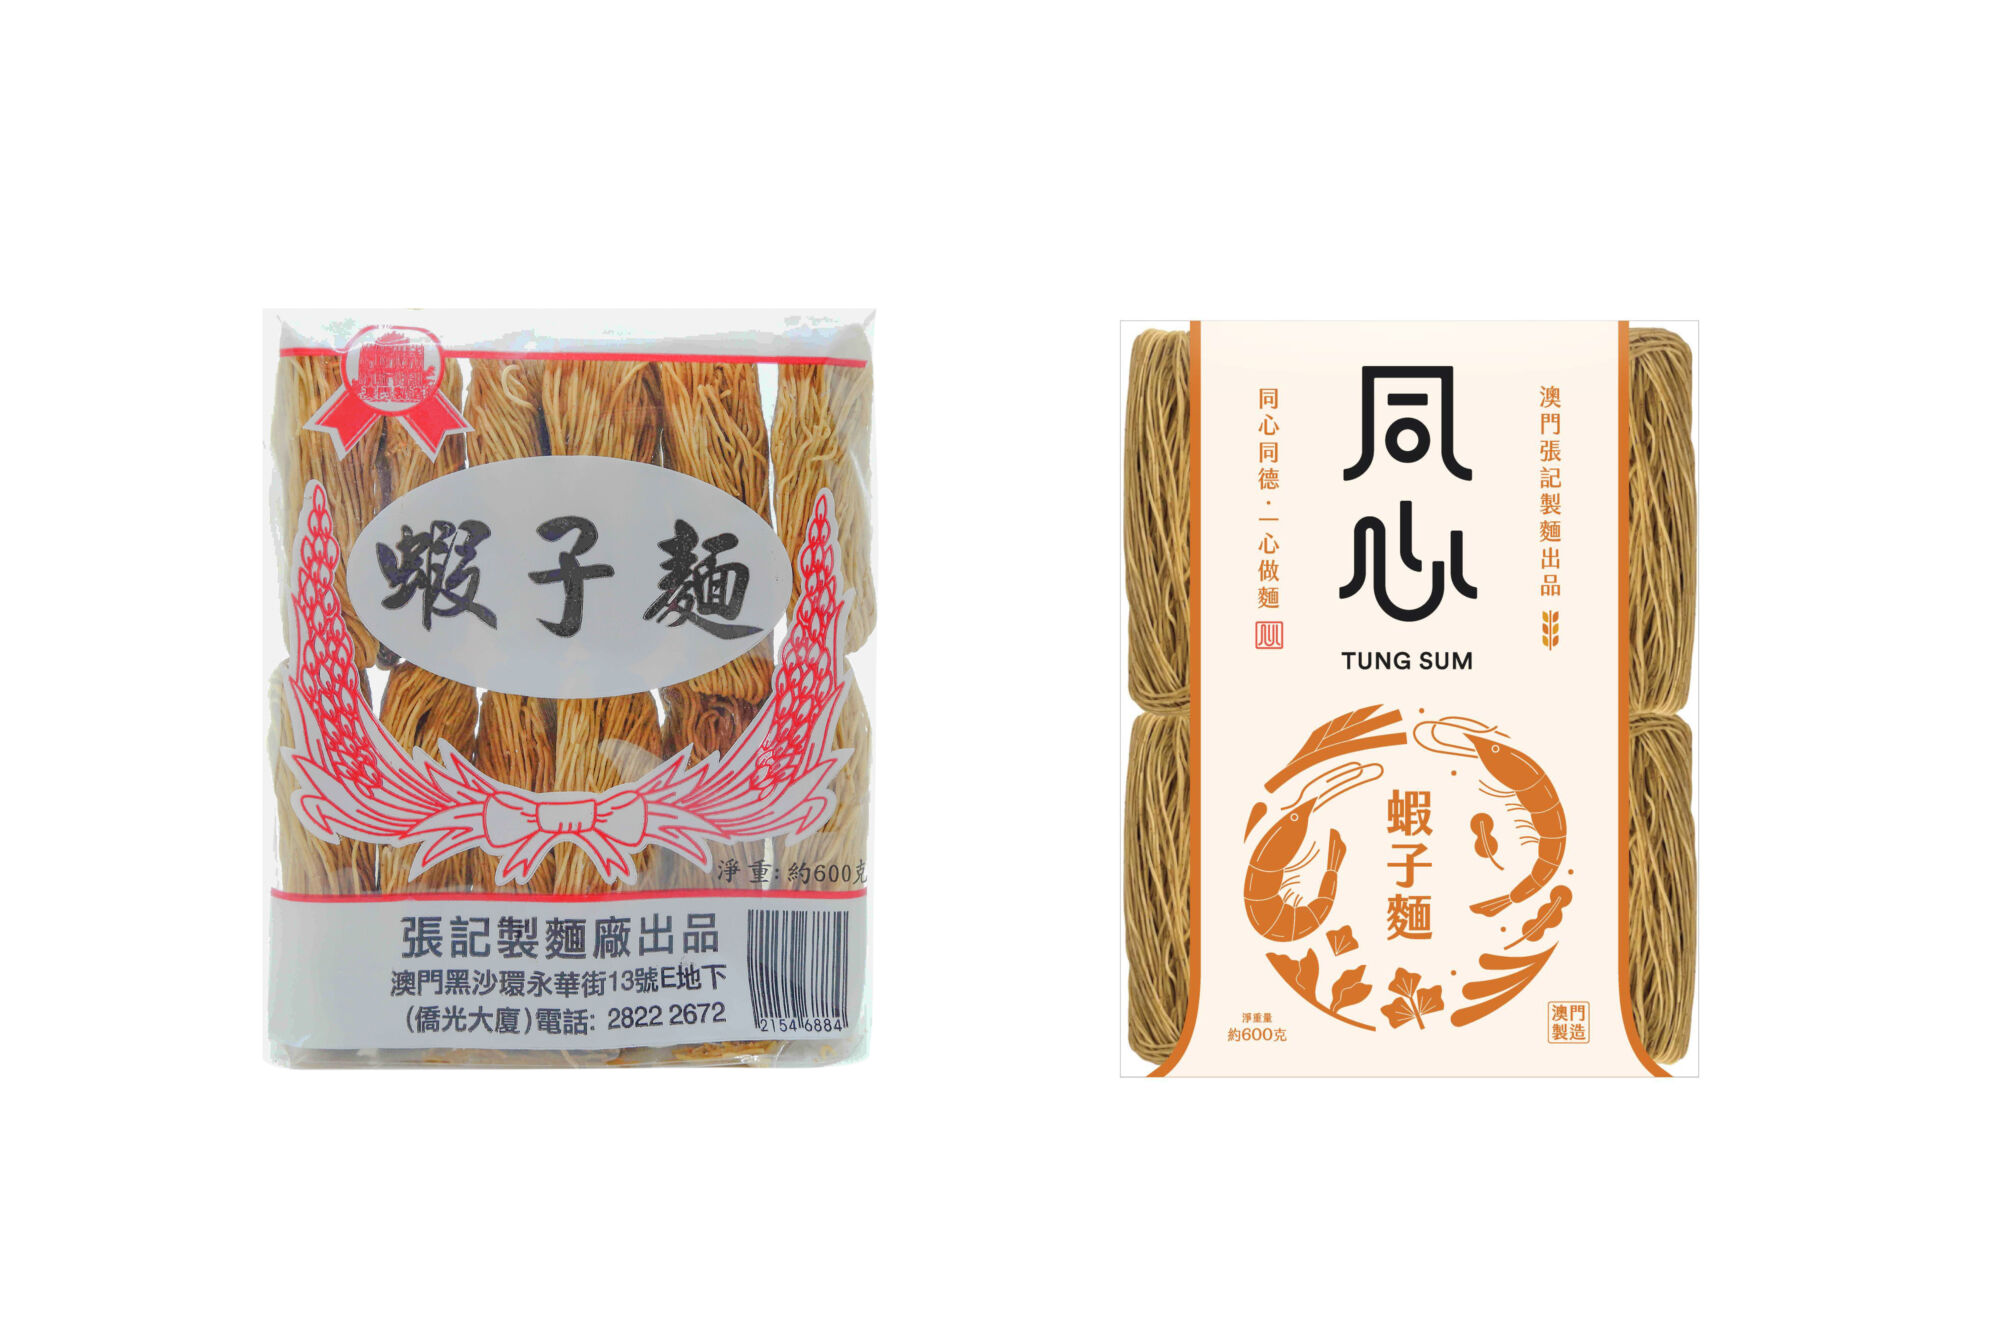 Cheong Kei Noodles by kenneth ho wwave design rebranding